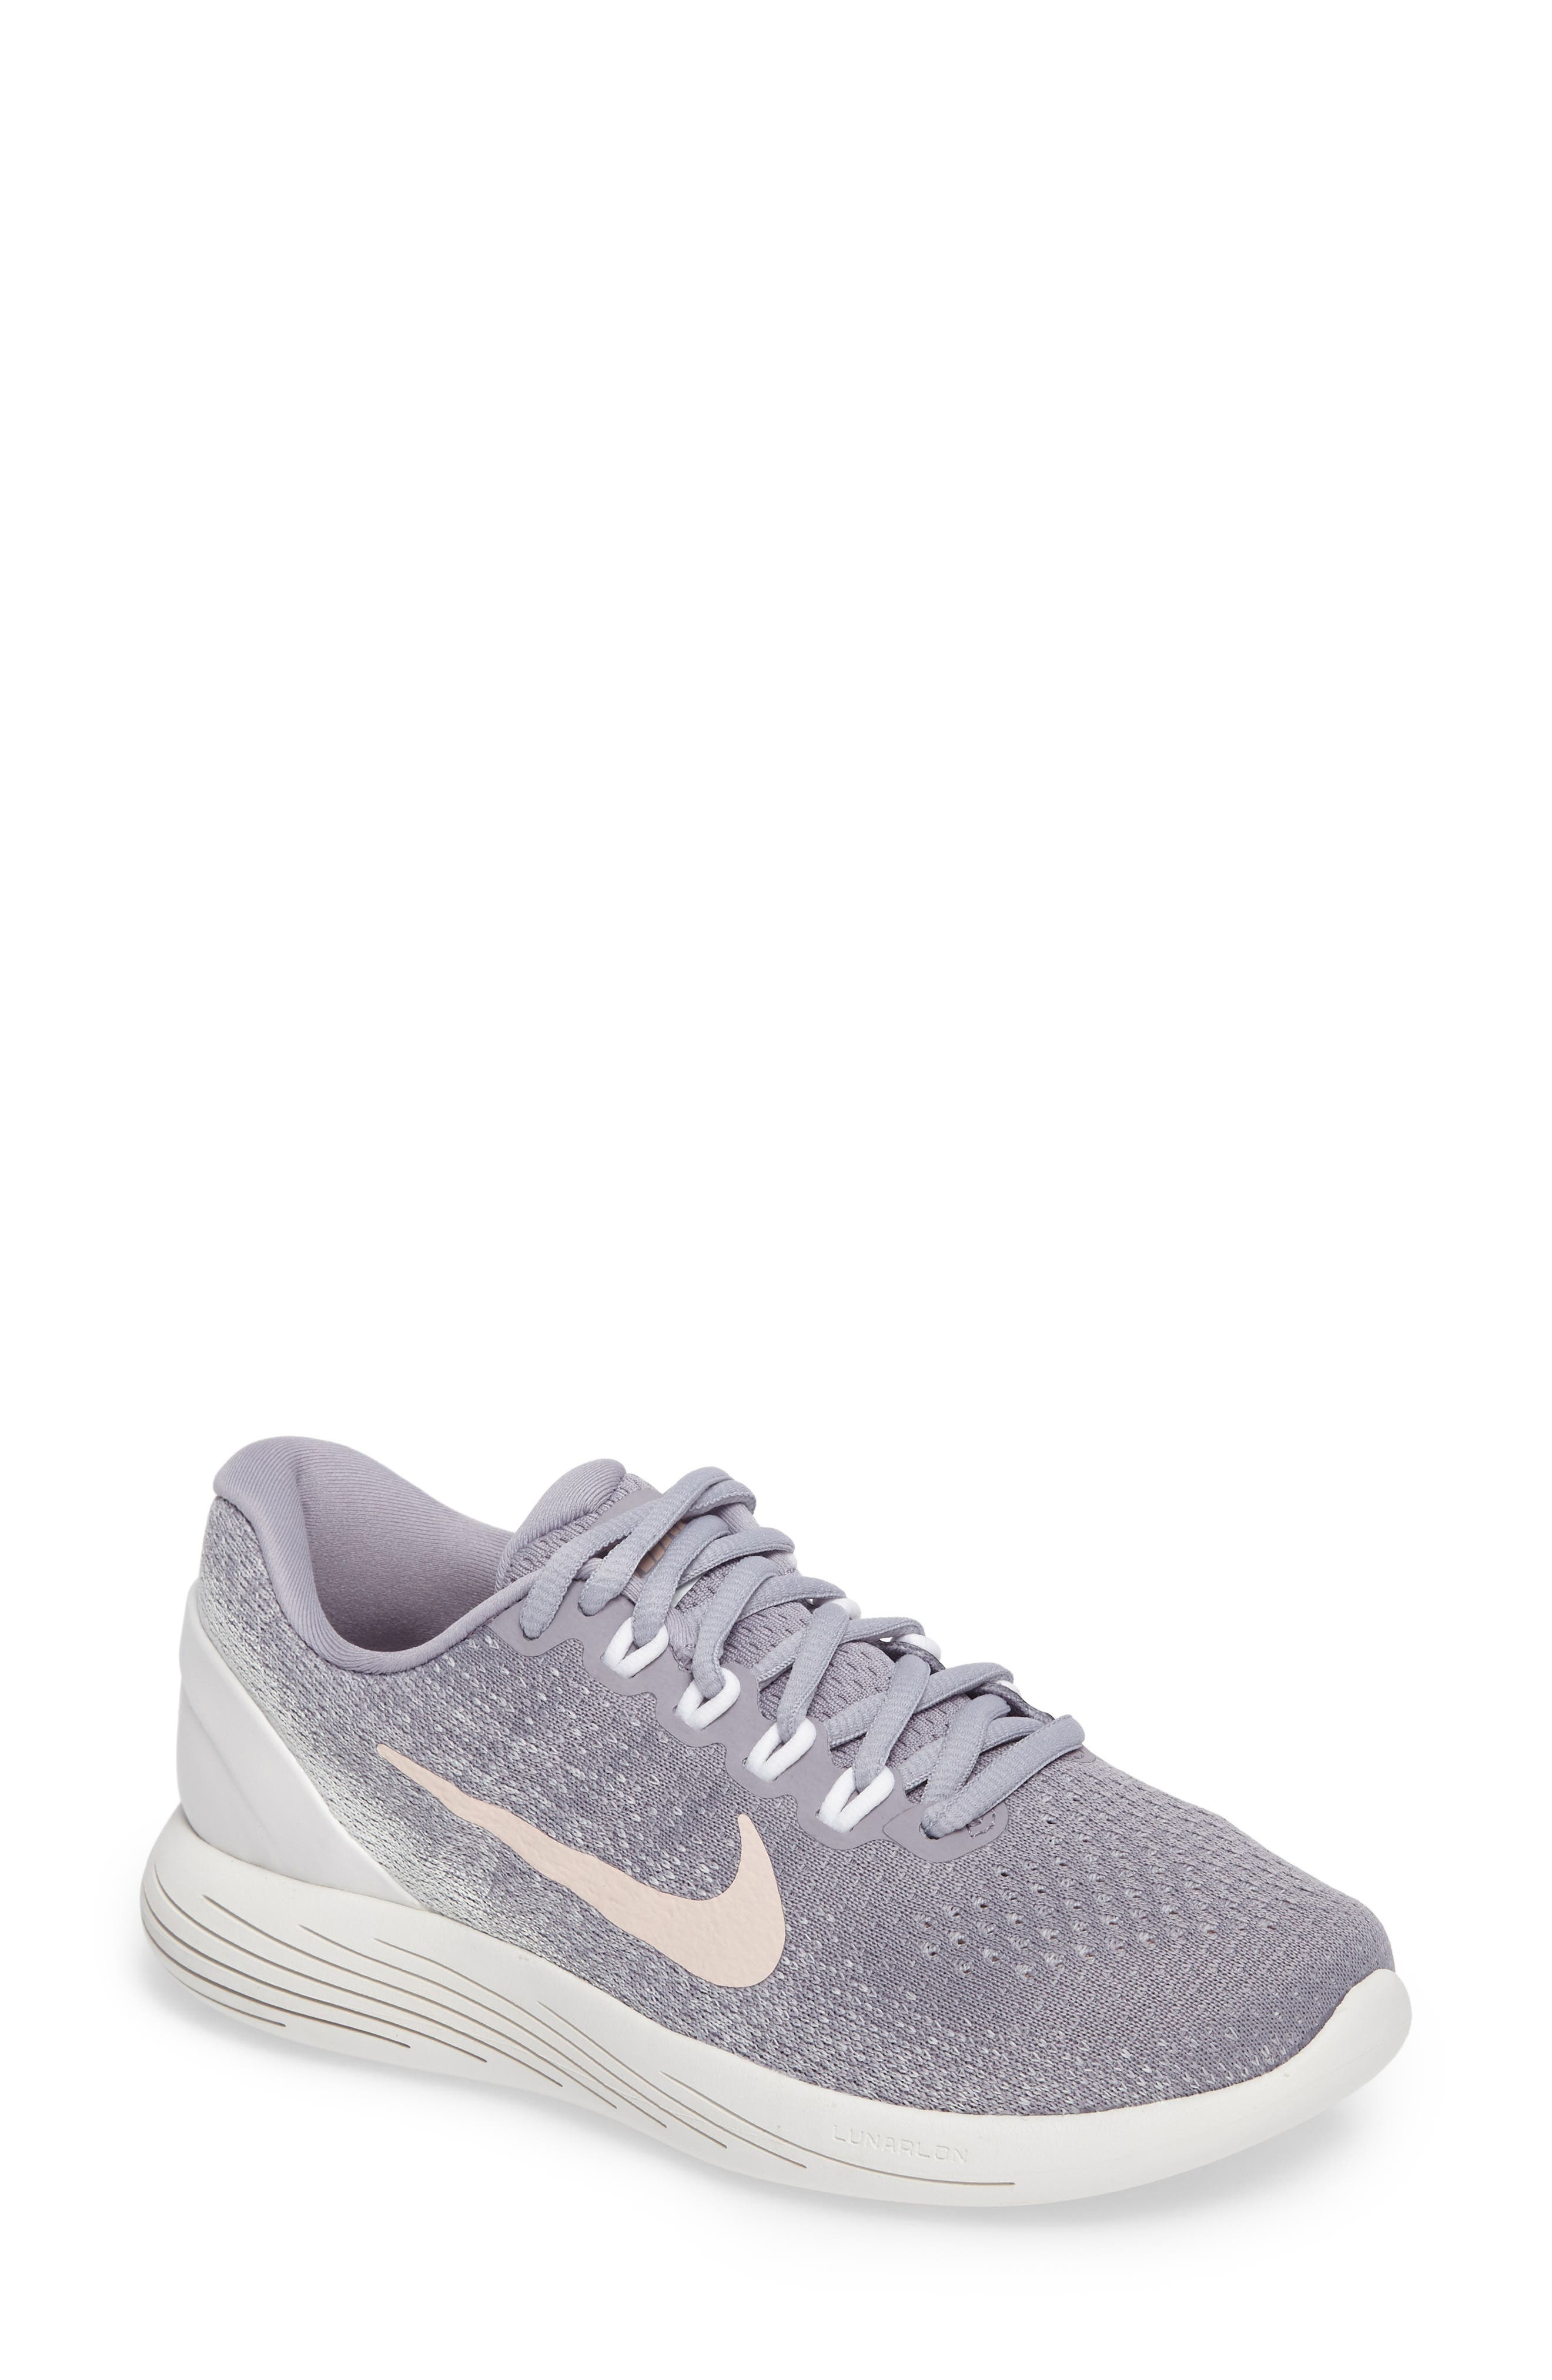 Shop a great selection of Nike Women's Shoes at Nordstrom Rack. Find designer Nike Women's Shoes up to 70% off and get free shipping on orders over $